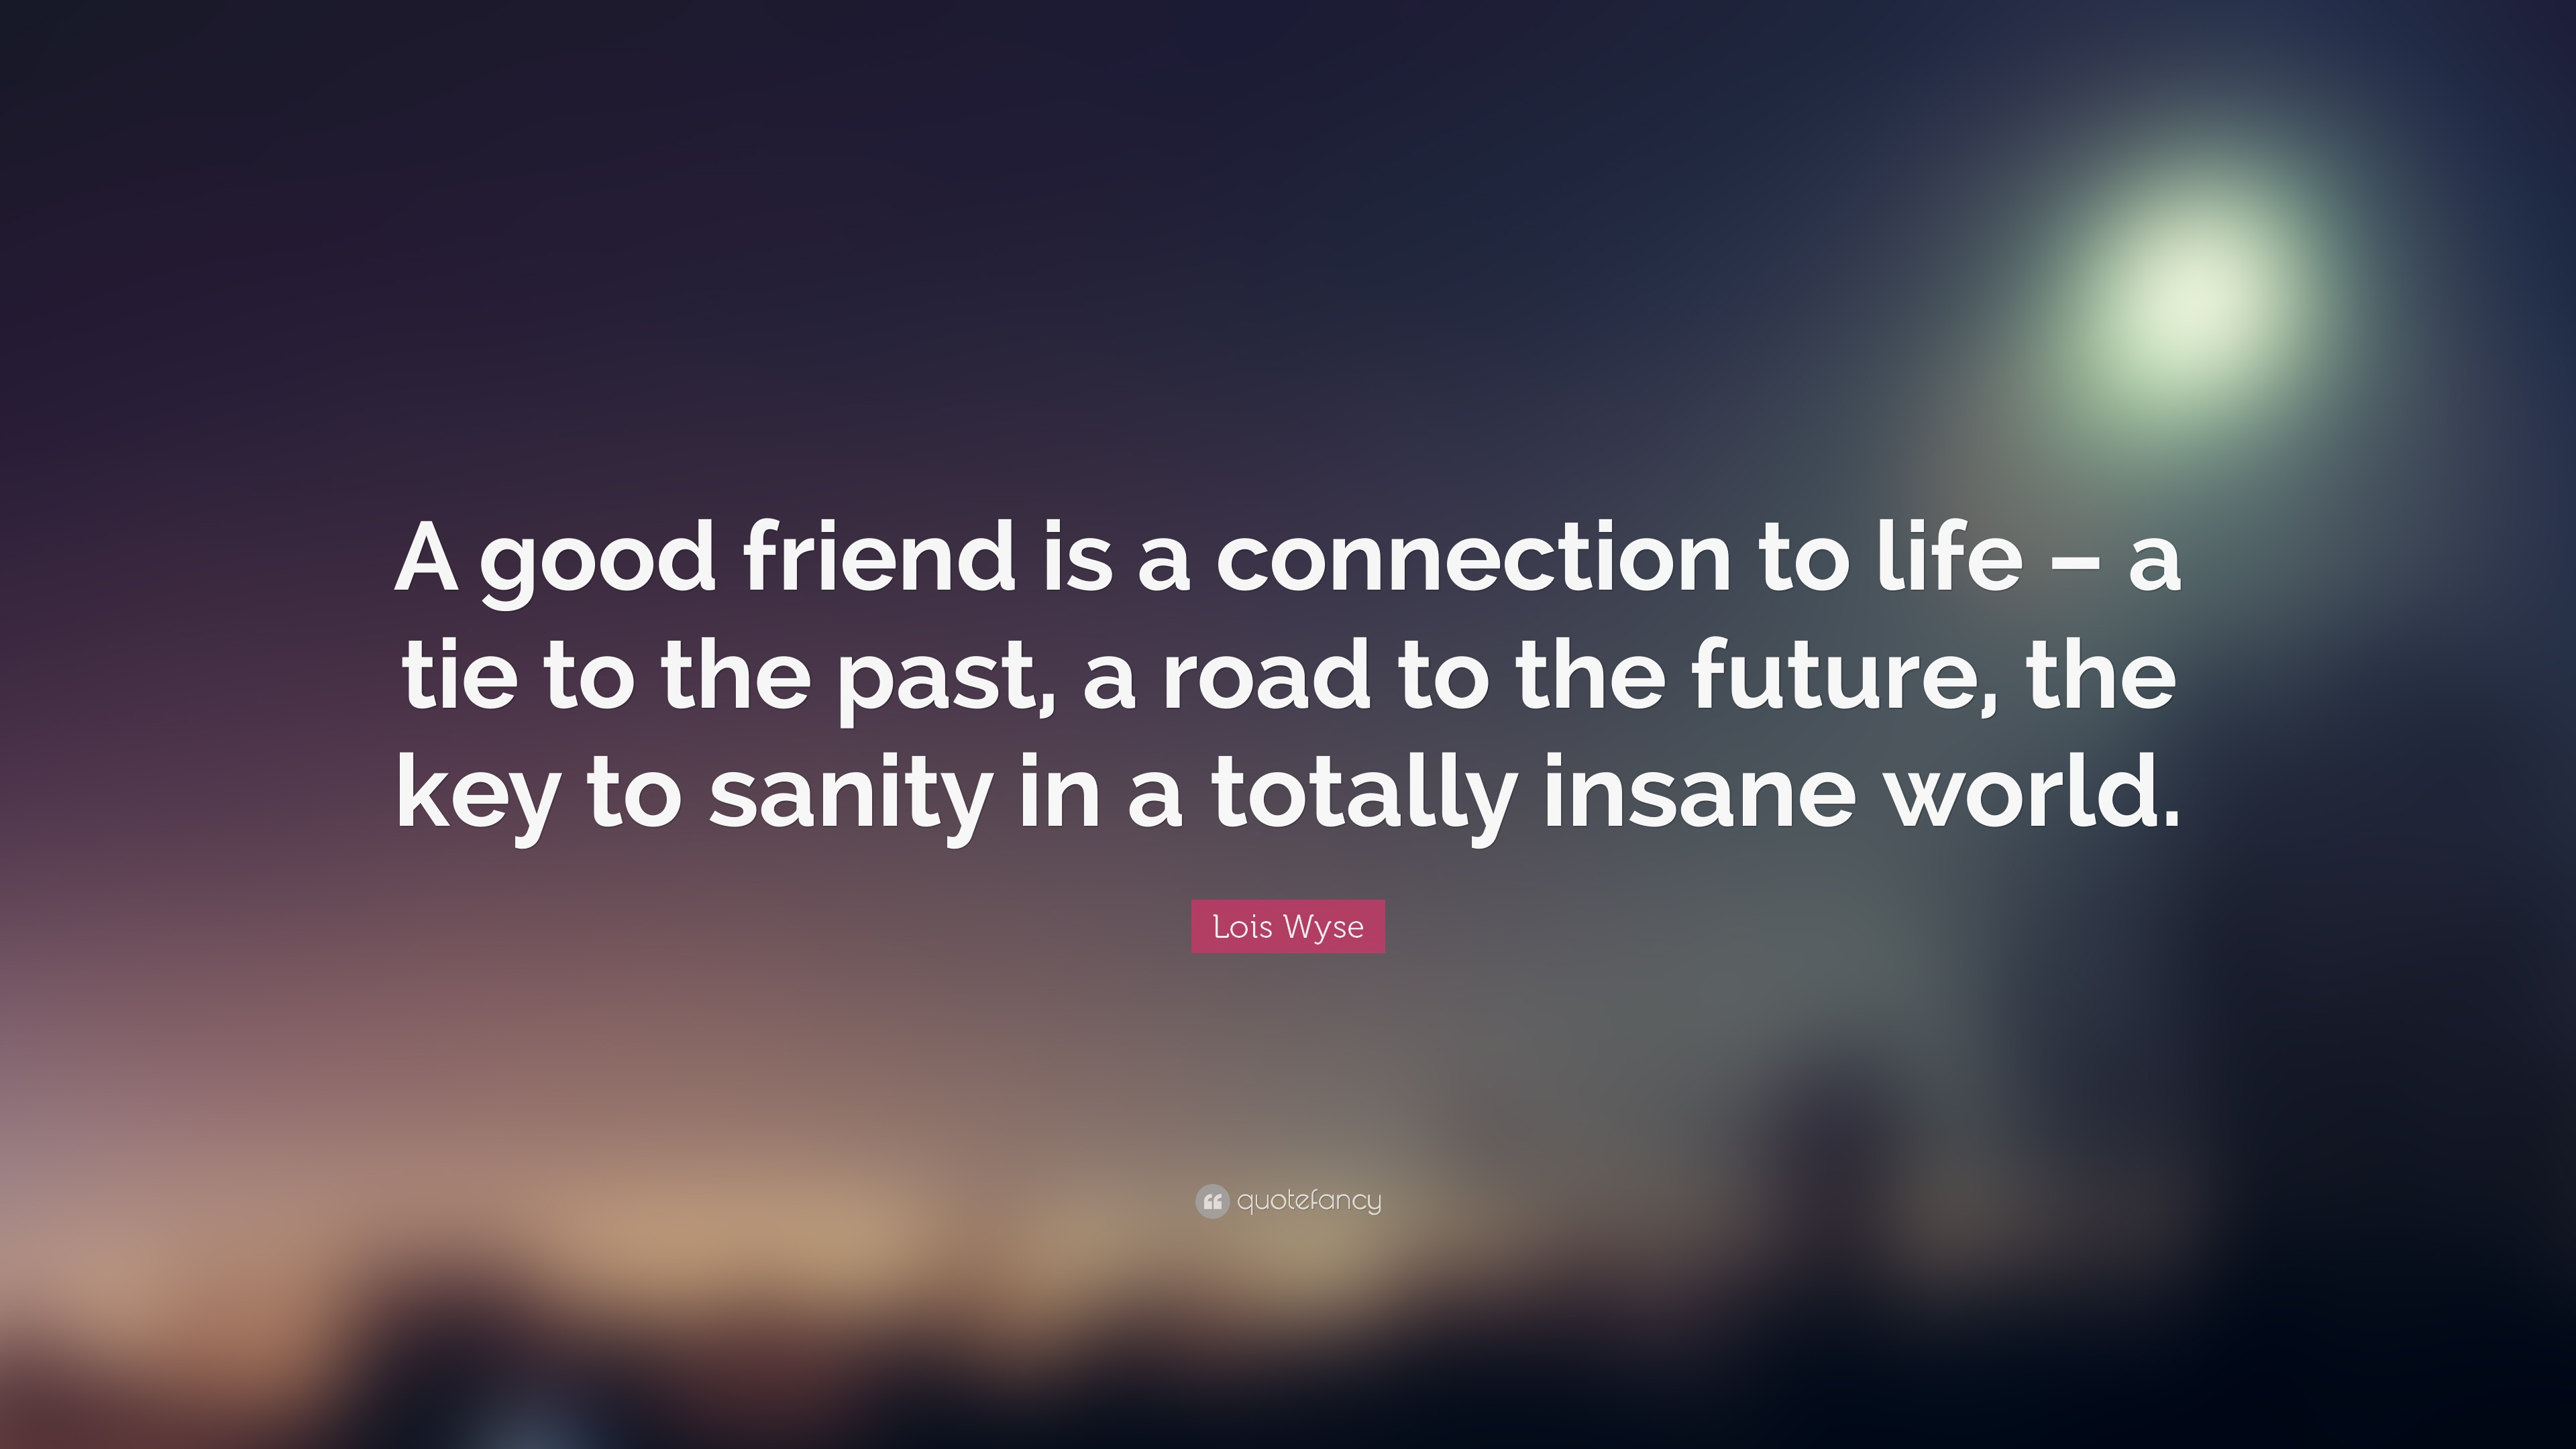 lois wyse quote a good friend is a connection to life a tie to